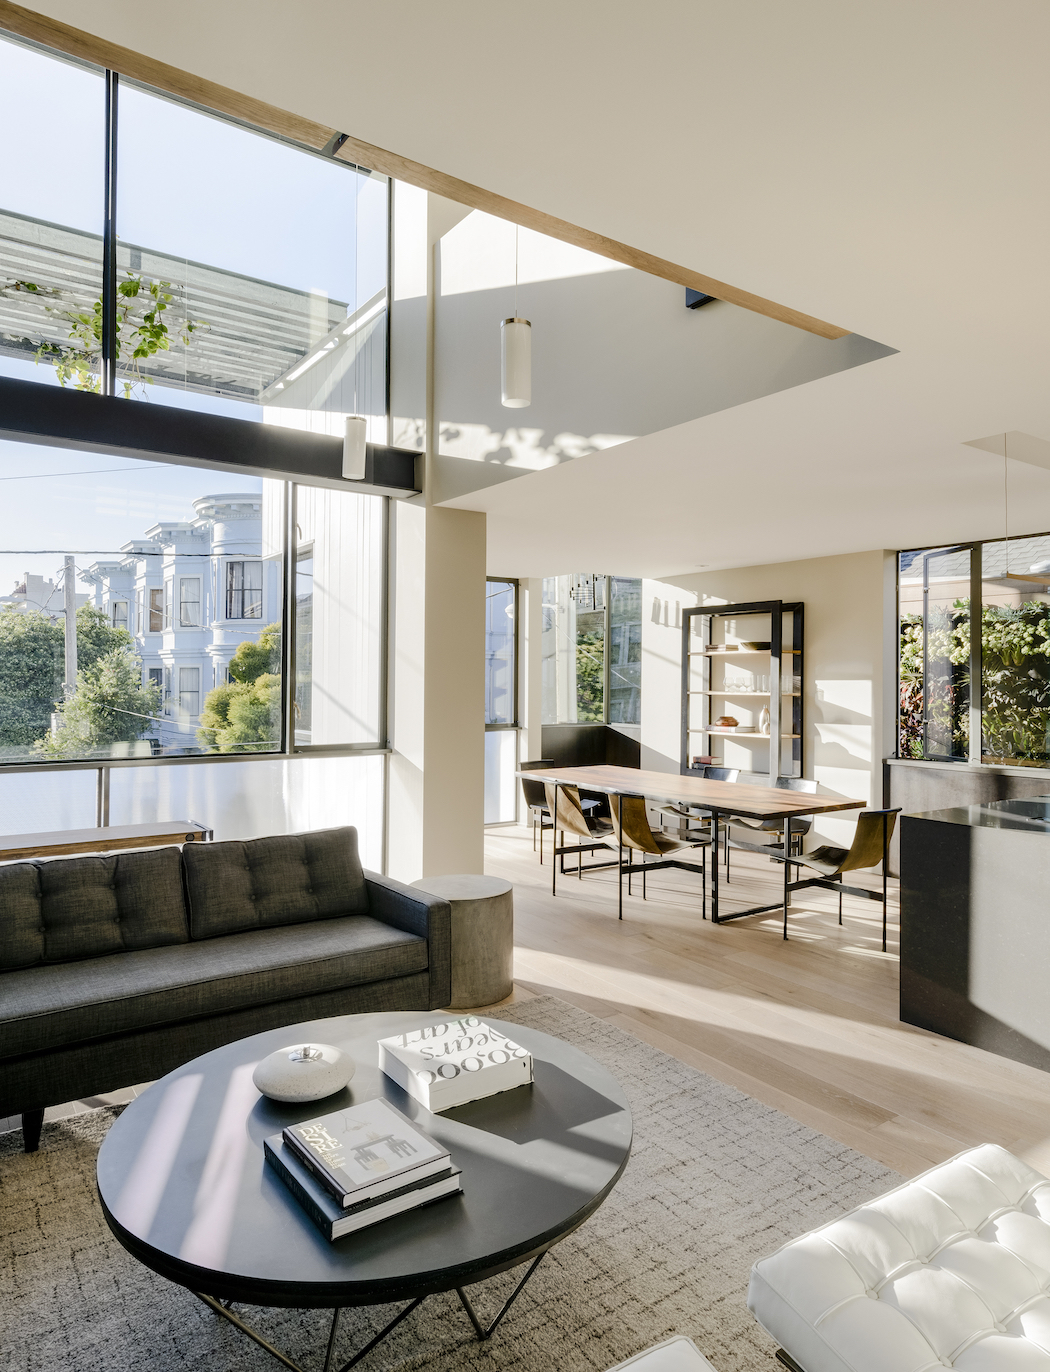 Albion Street Residences - Kennerly Architecture & Planning 4